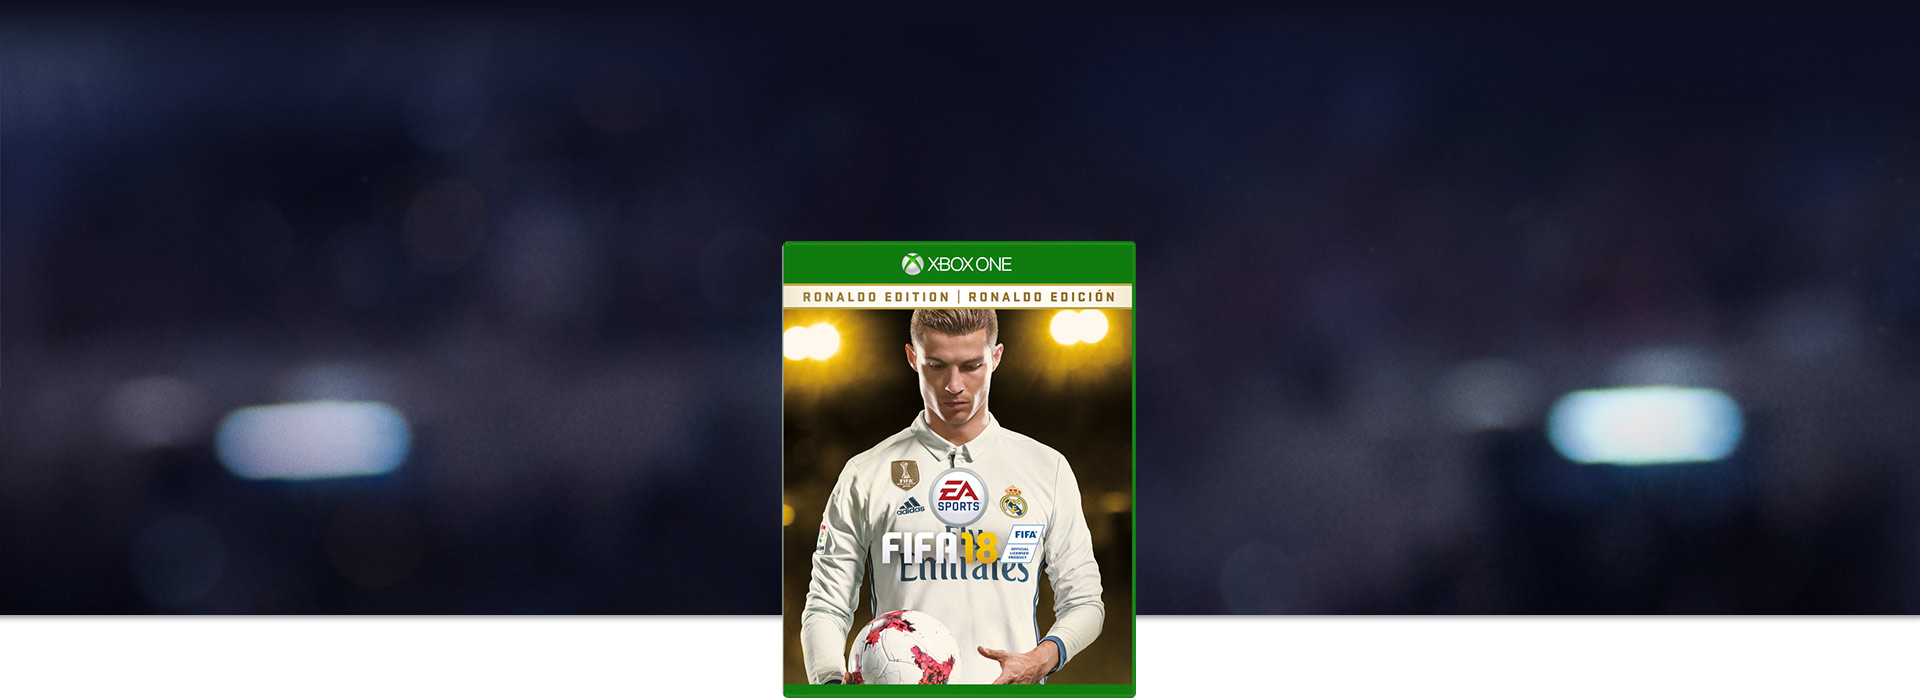 FIFA 18 – coverbillede